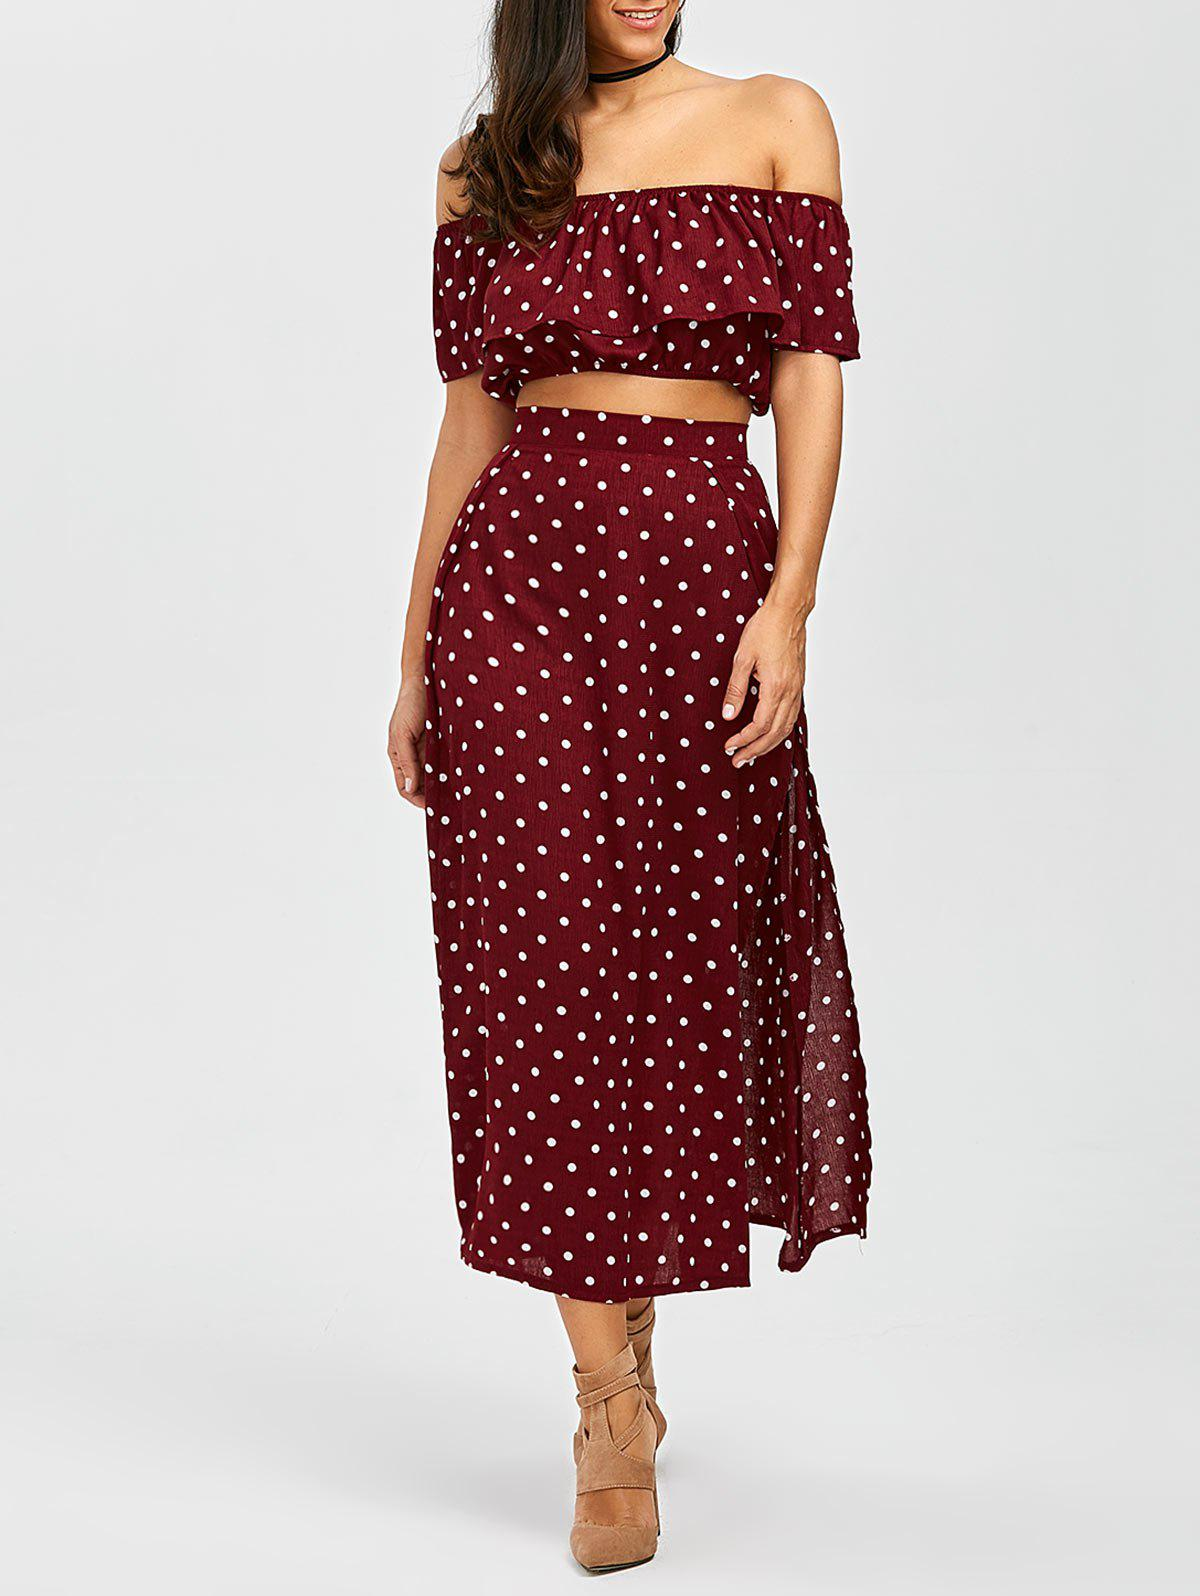 Polka Dot Split Skirt+Flounce Crop Top - DARK RED L